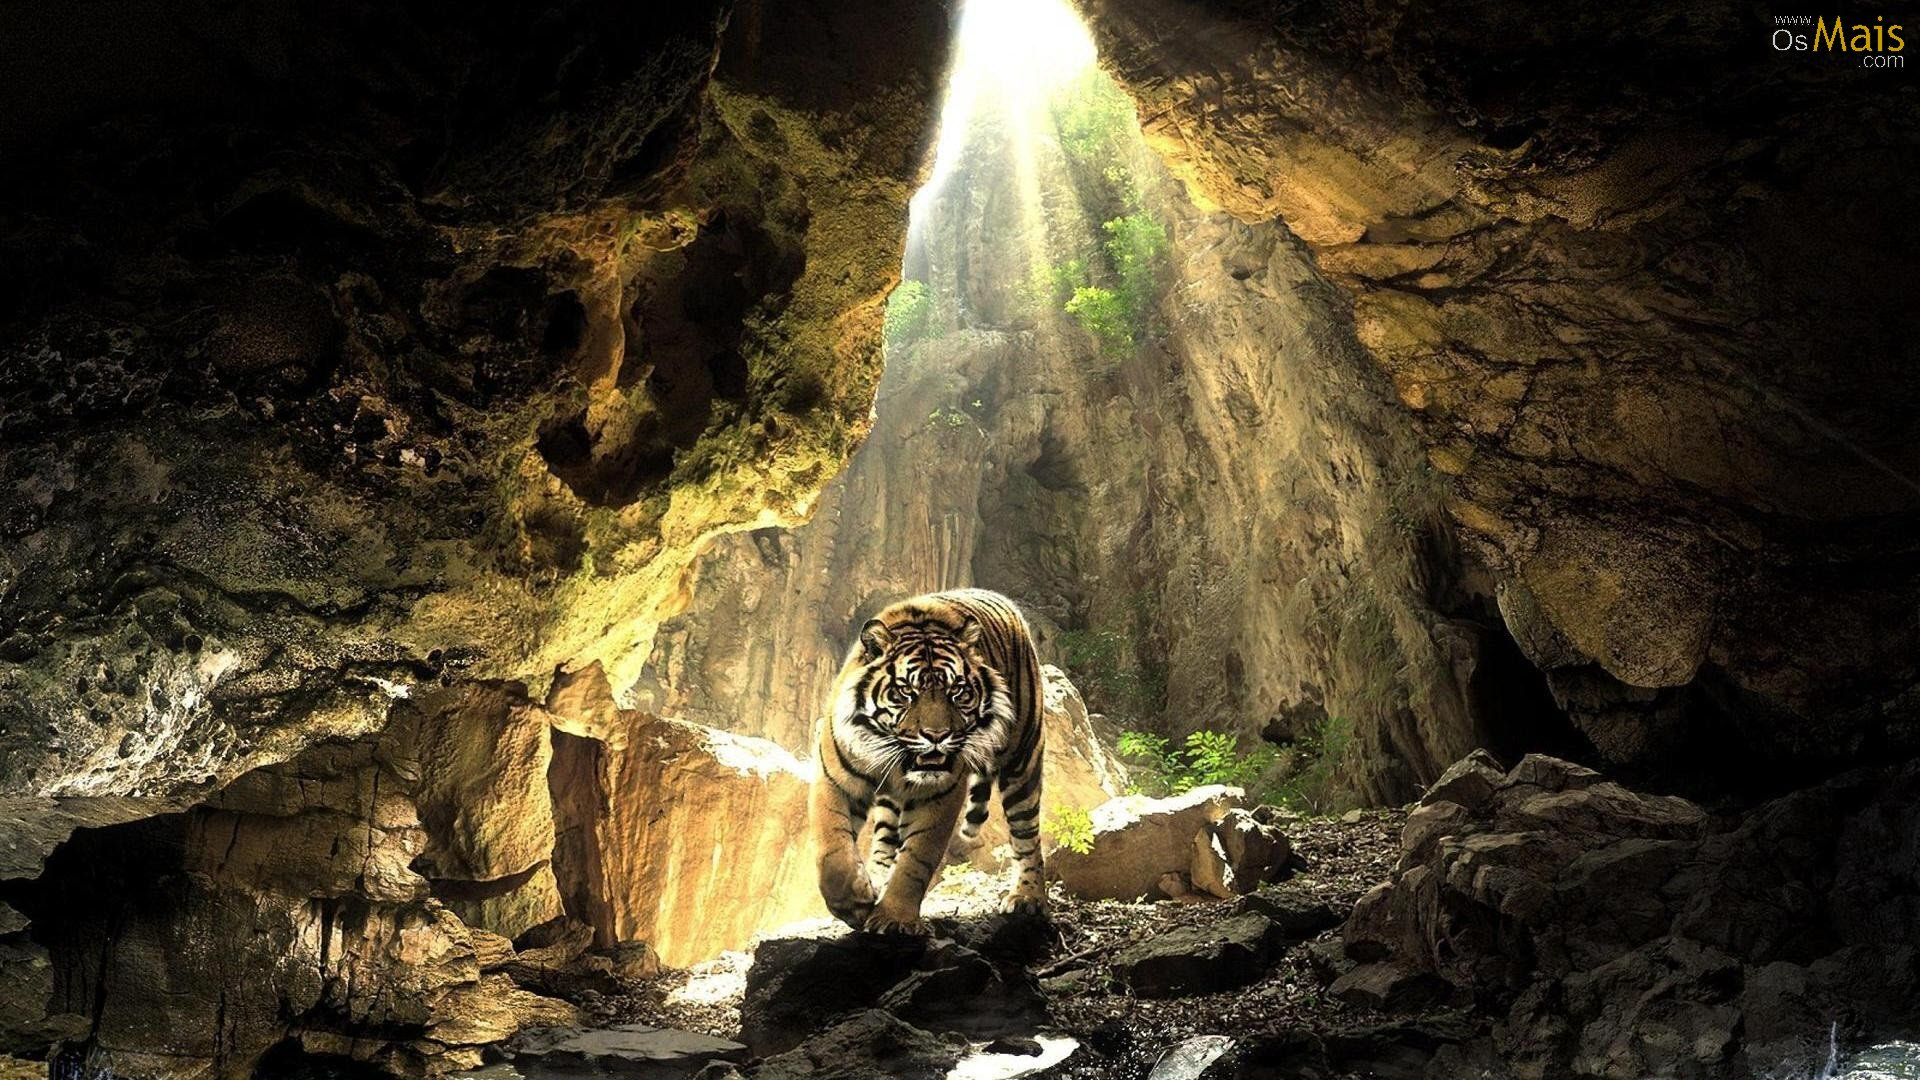 http://www.osmais.com/wallpapers/201210/tigre-na-caverna-wallpaper.jpg